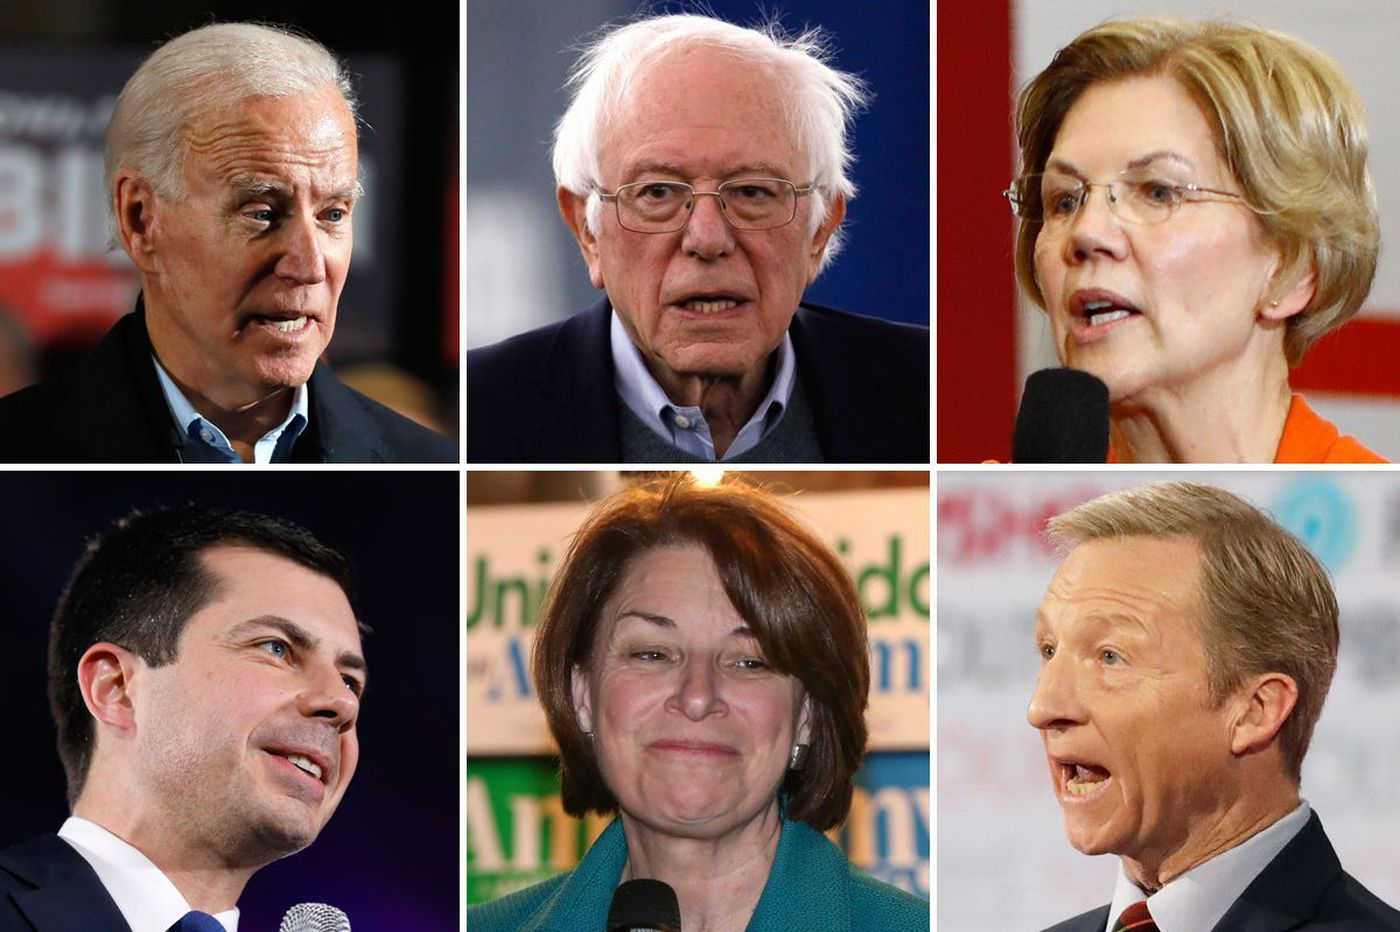 Democratic debate: Smallest stage of candidates yet face off ahead of Iowa caucuses